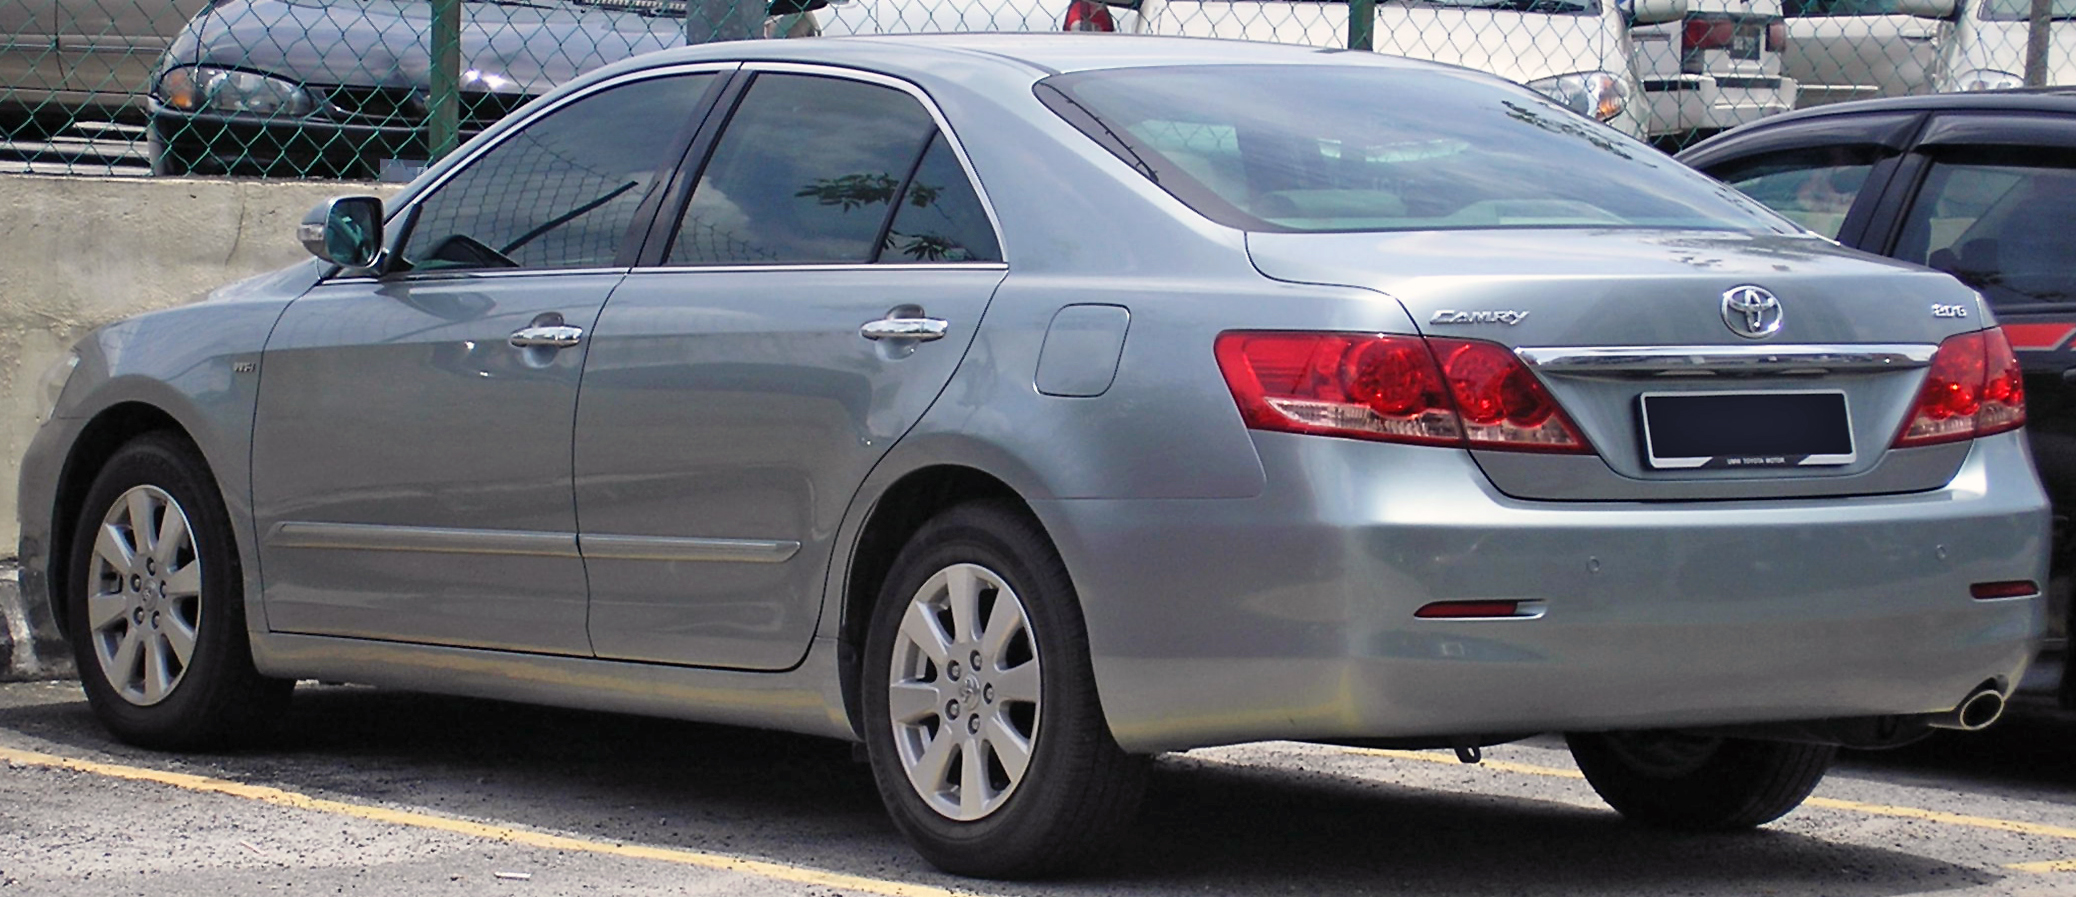 File Toyota Camry Sixth Generation Rear Serdang Jpg Wikimedia Commons